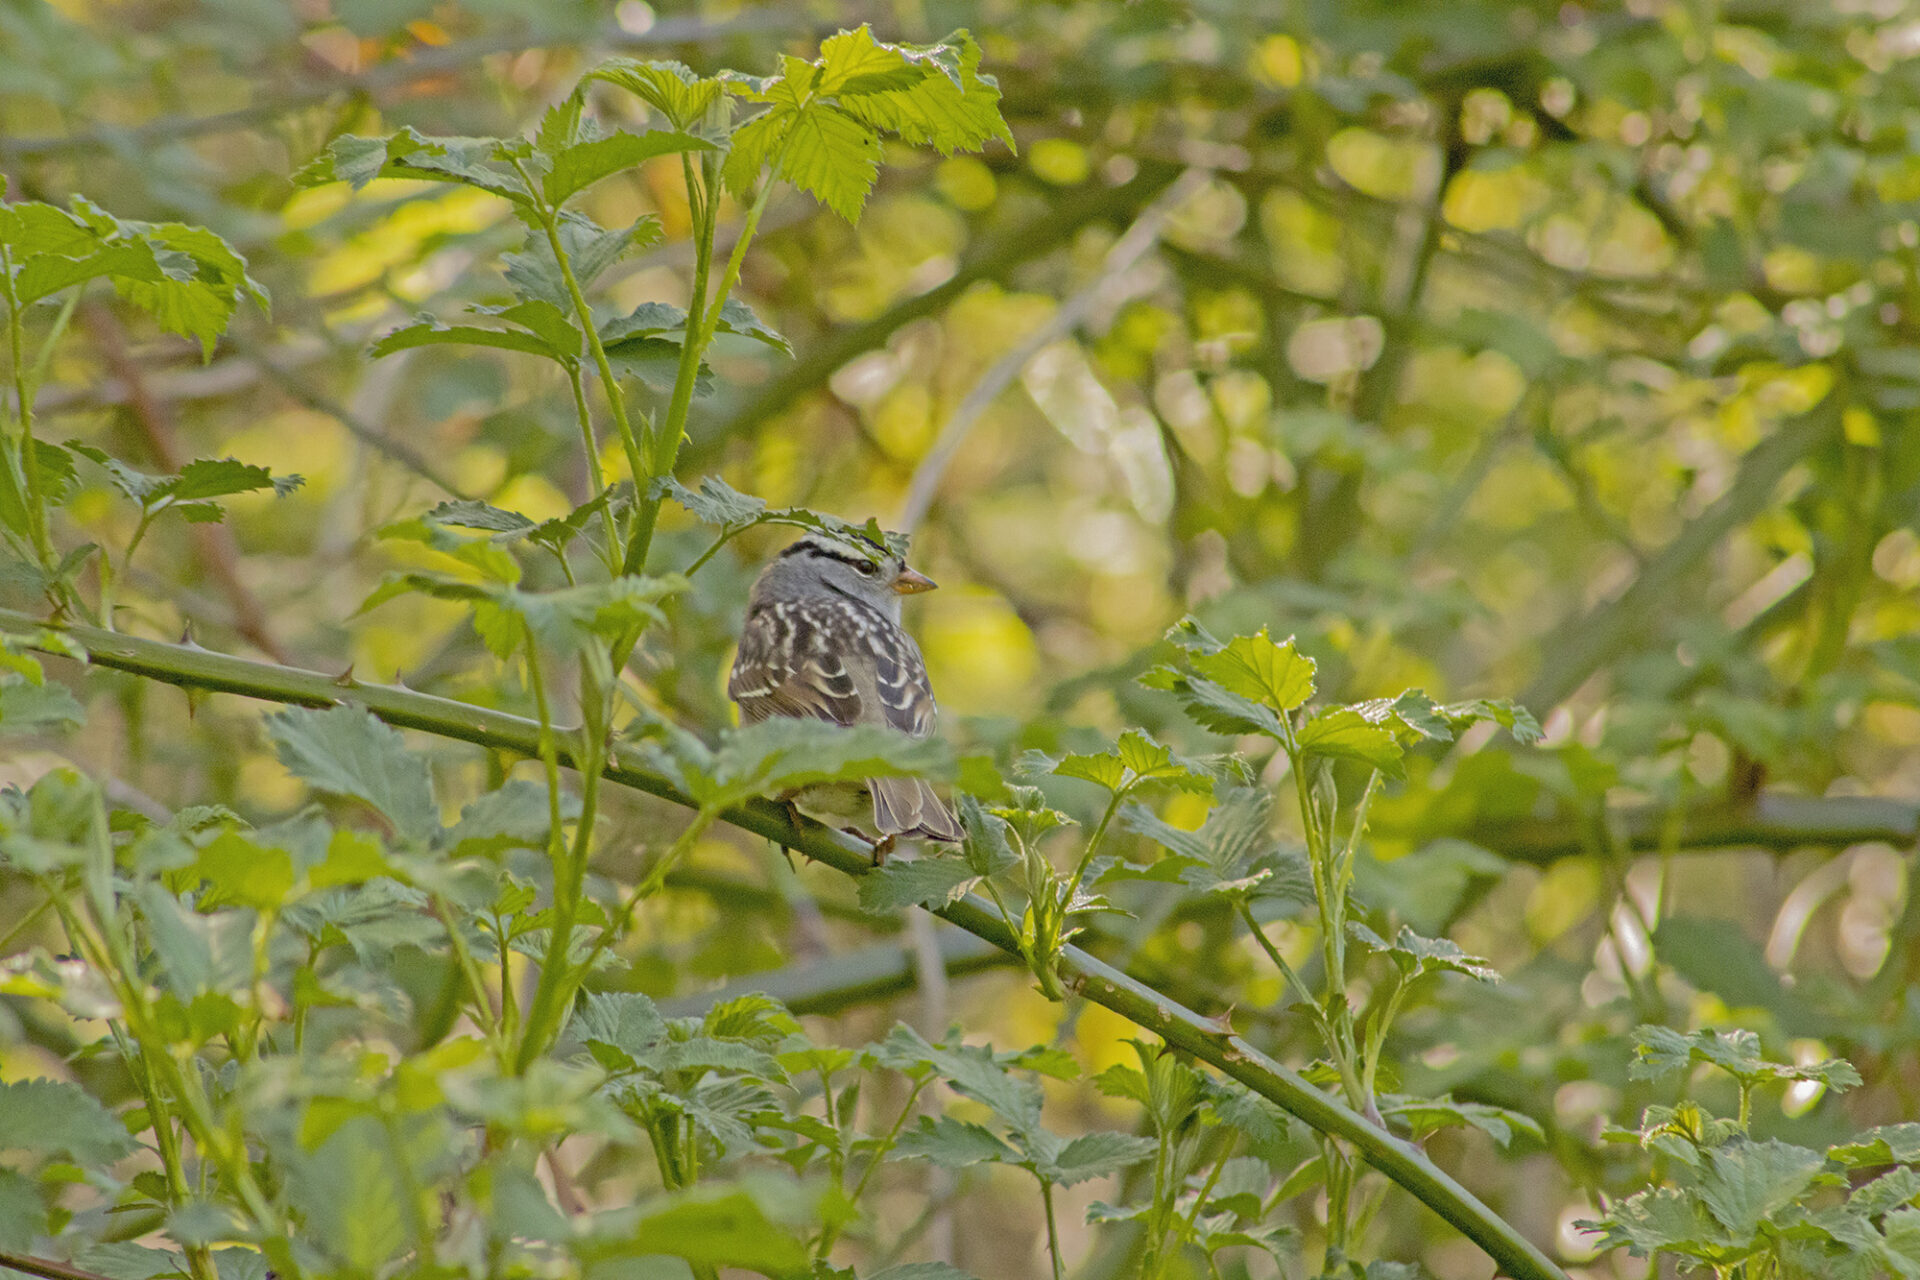 White-Crowned Sparrow, April 19, 2021